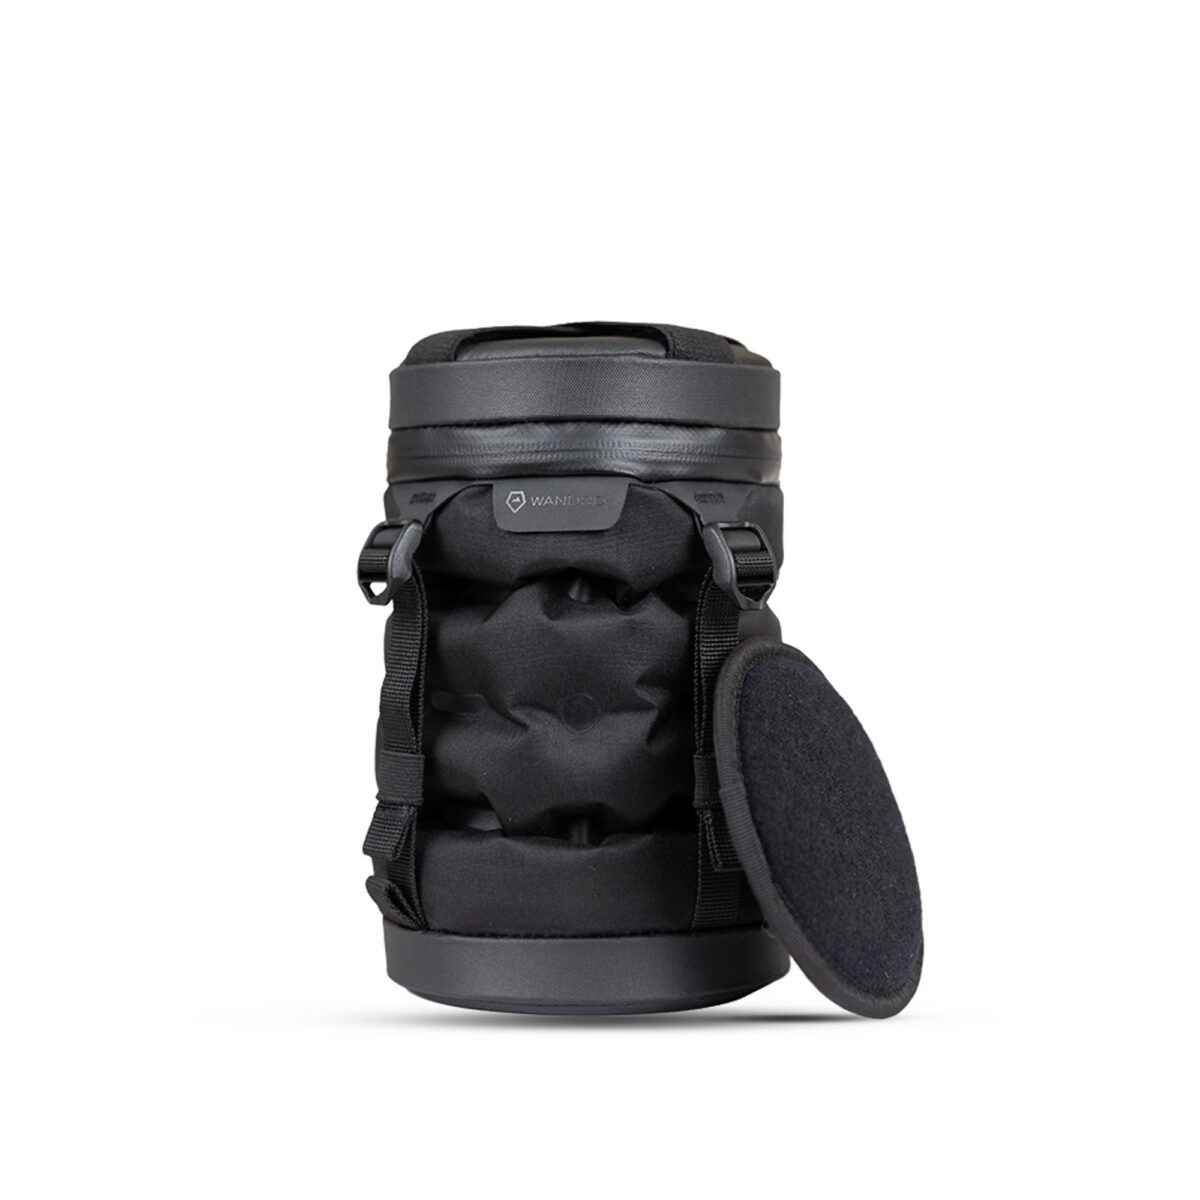 Wandrd inflatable lens cover